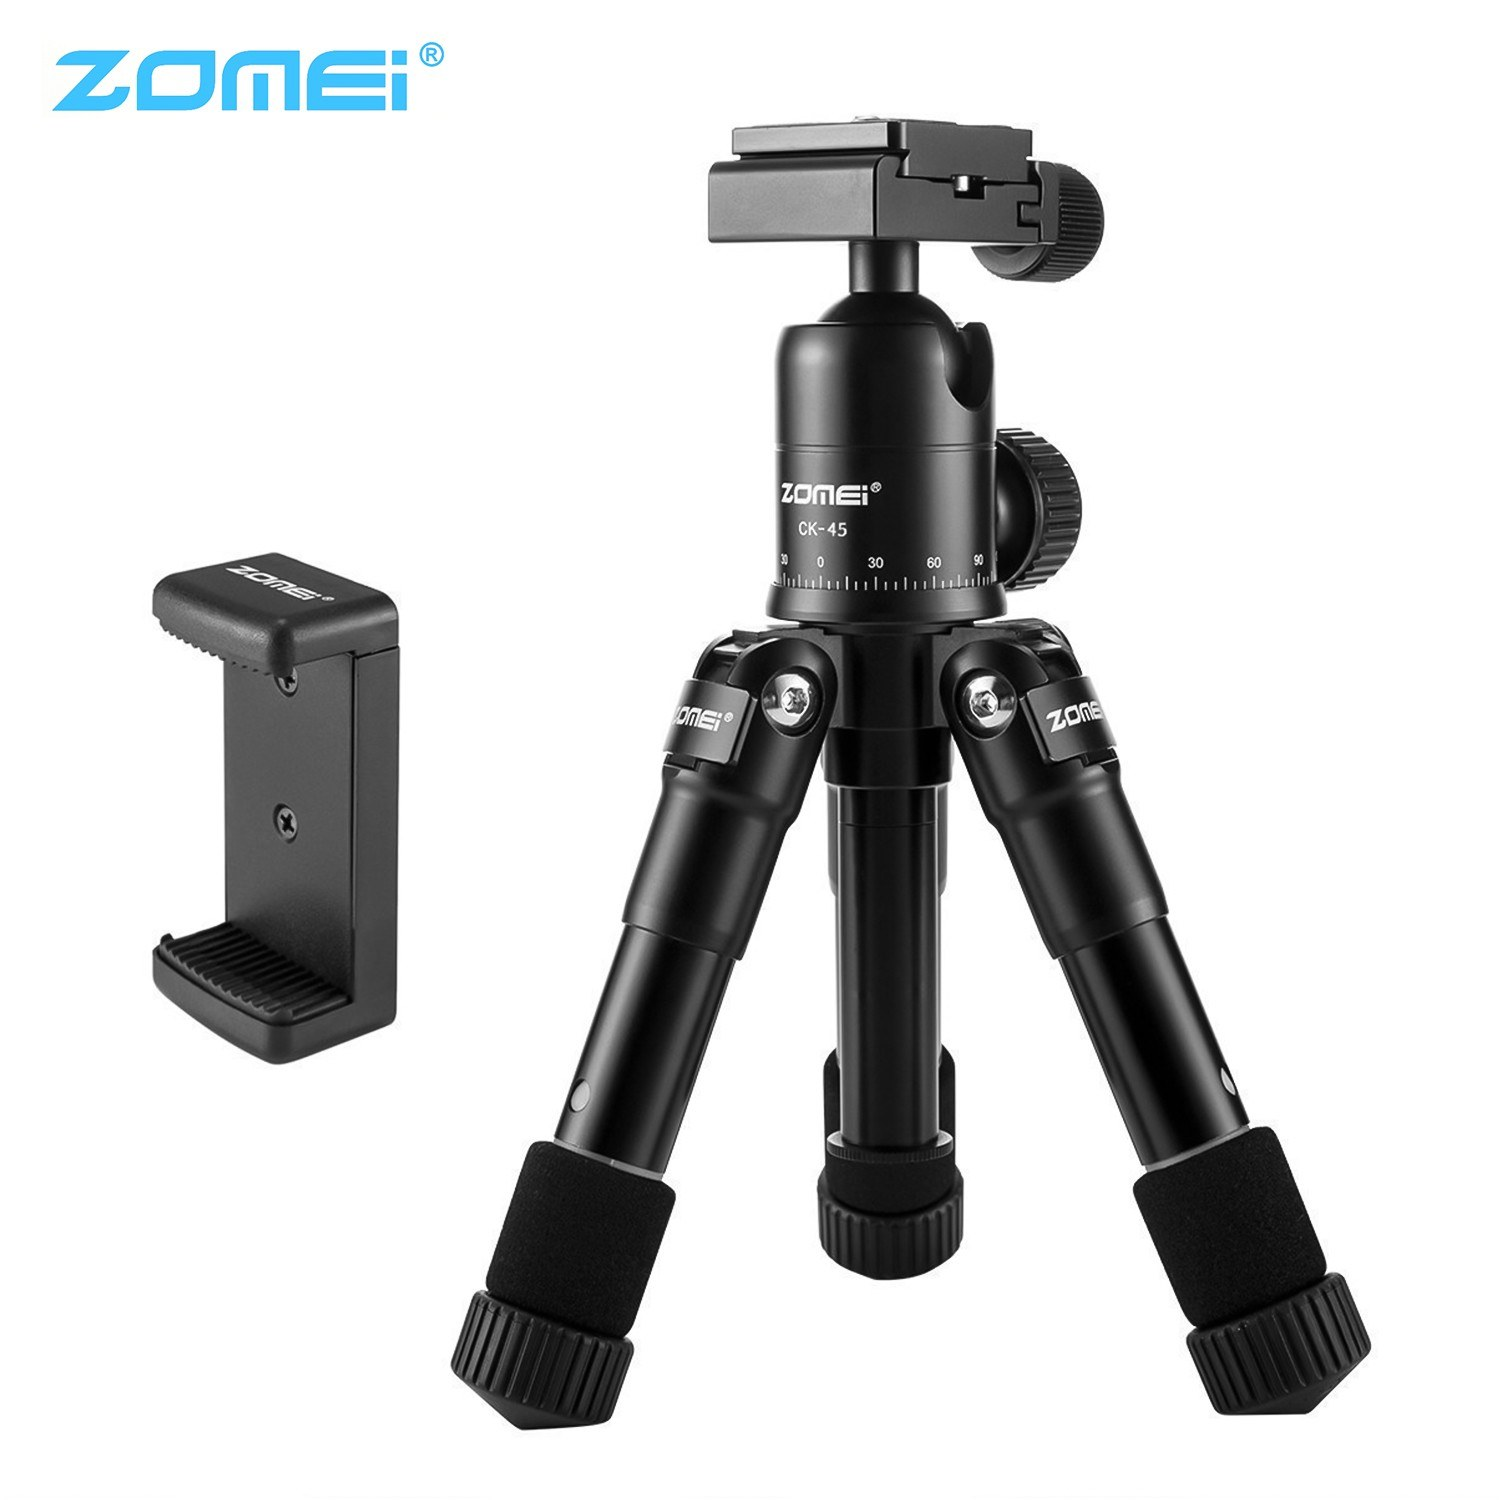 Zomei Mini Table Tripod Stand with Phone Holder Compatible with iPhone Huawei Xiaomi Smartphone Sony Canon Leica Camera